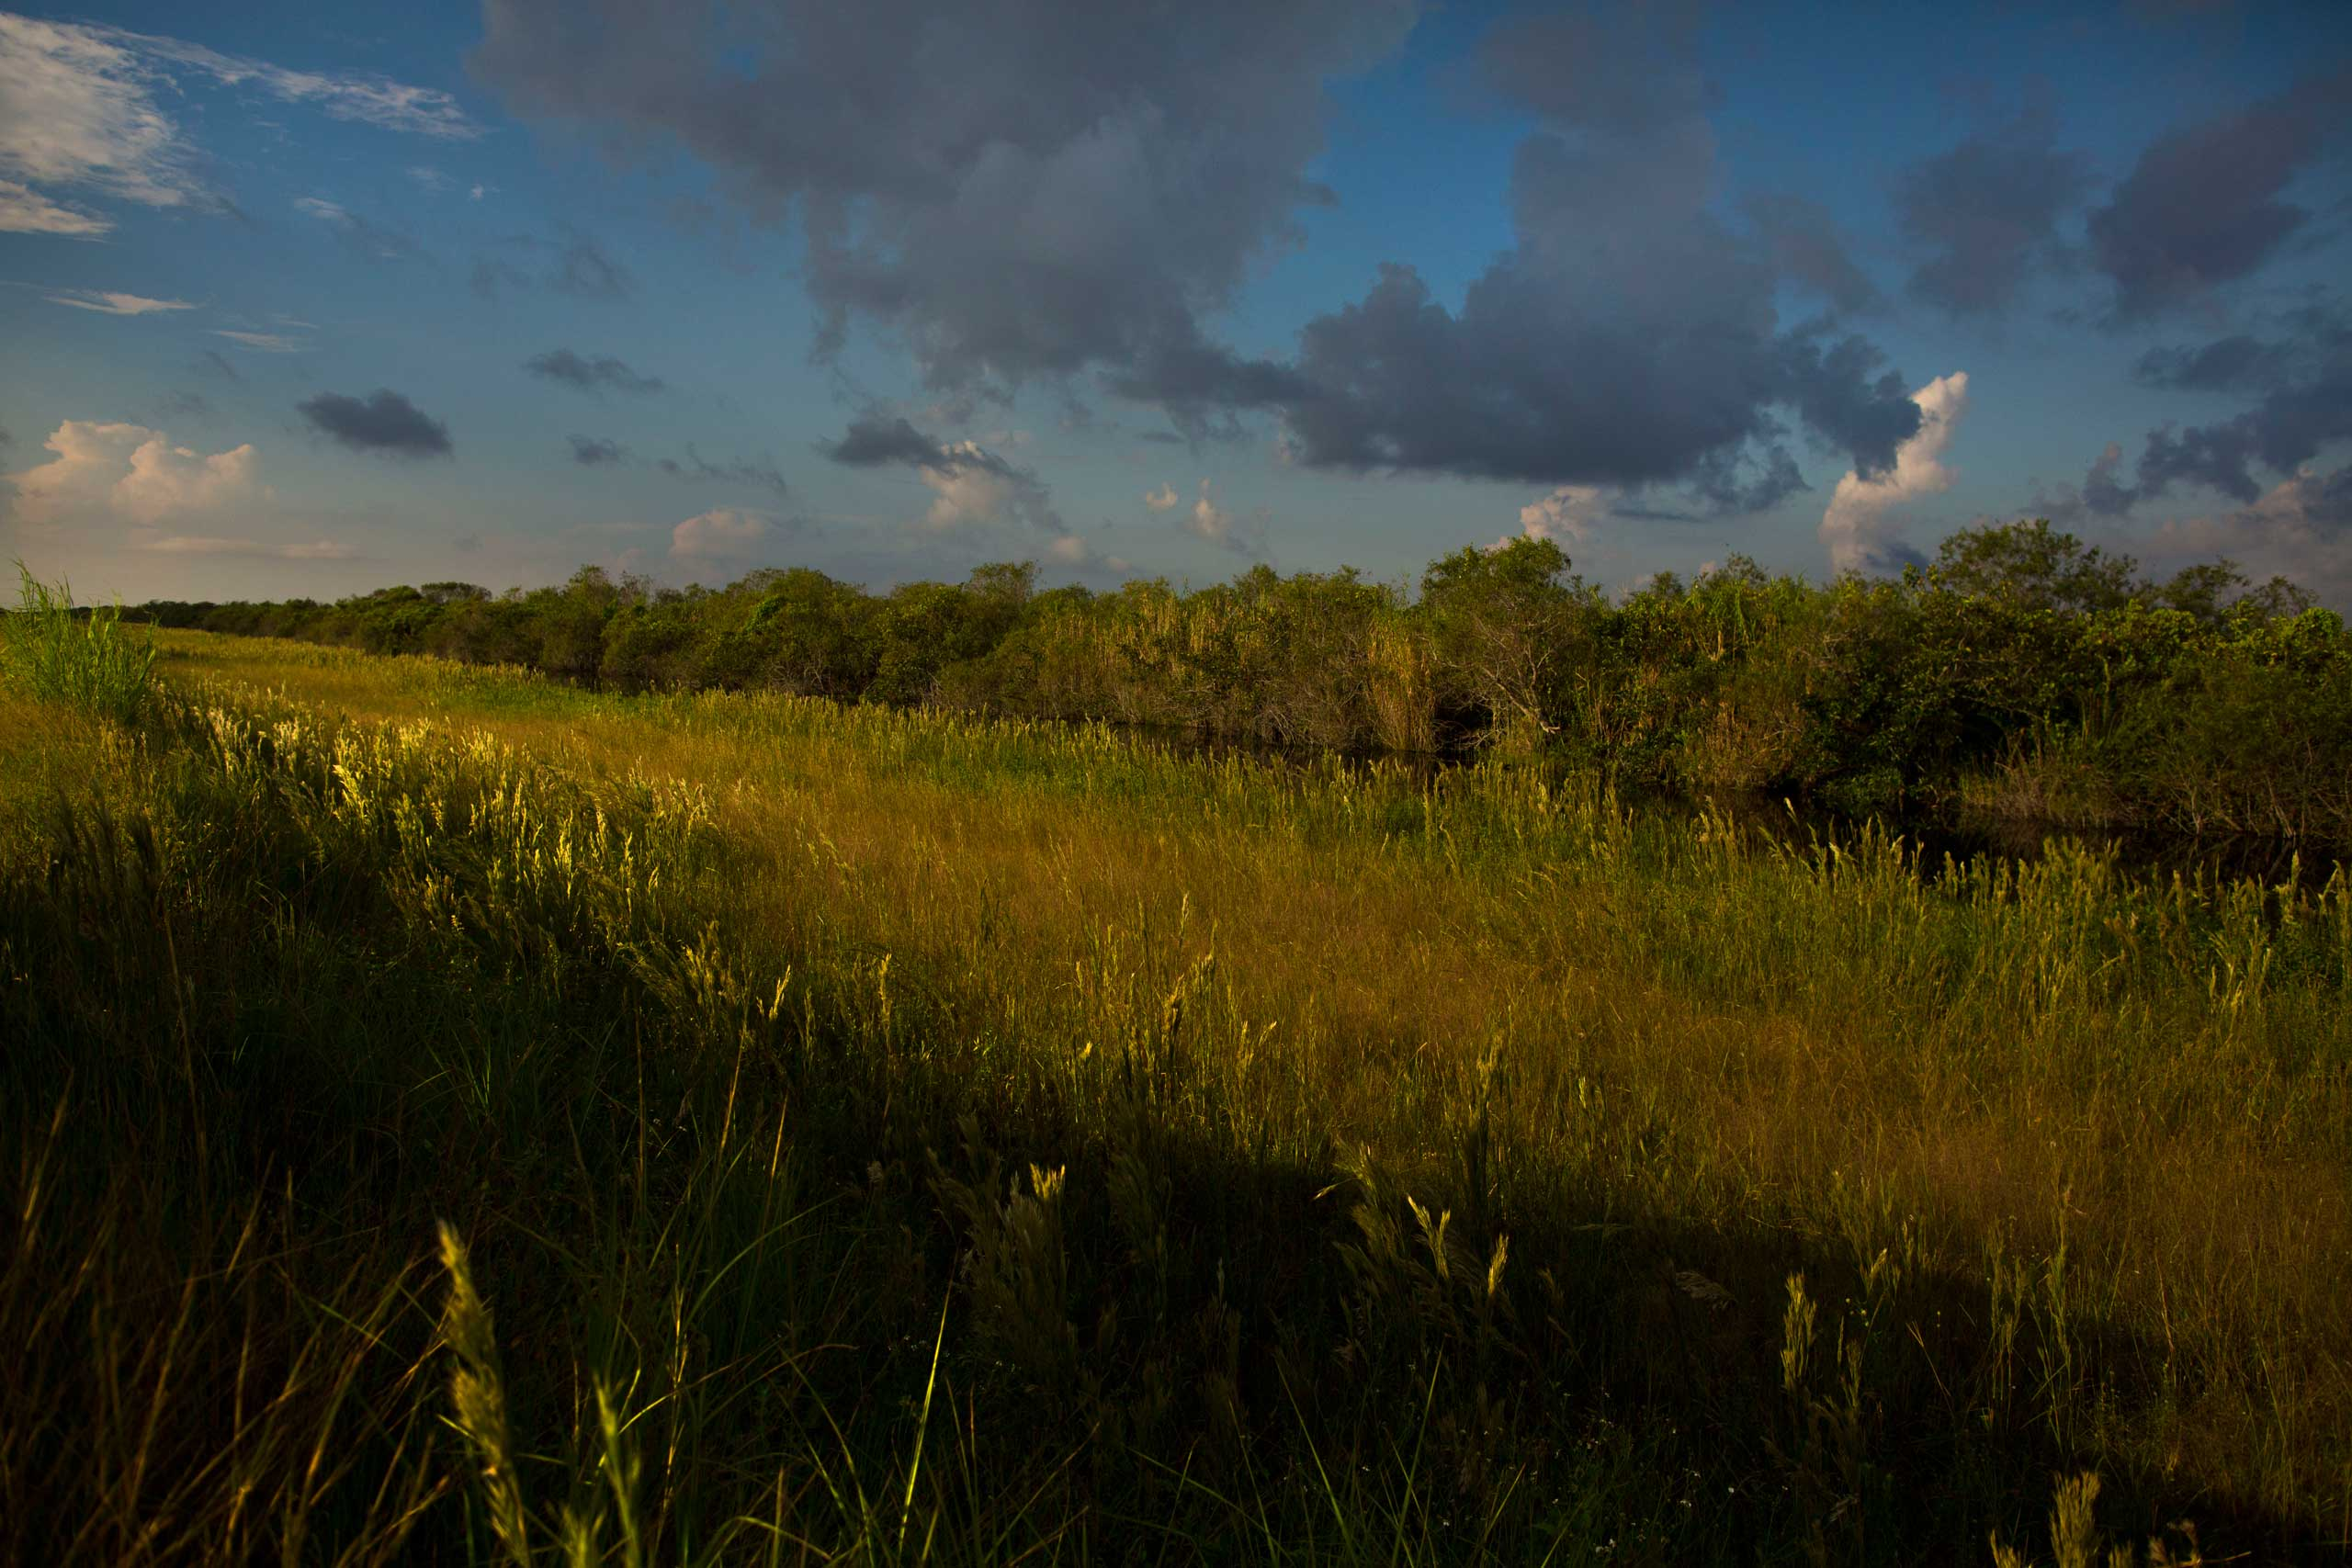 The Shark River Slough area of Florida's Everglades National Park on Saturday Oct. 4, 2014.